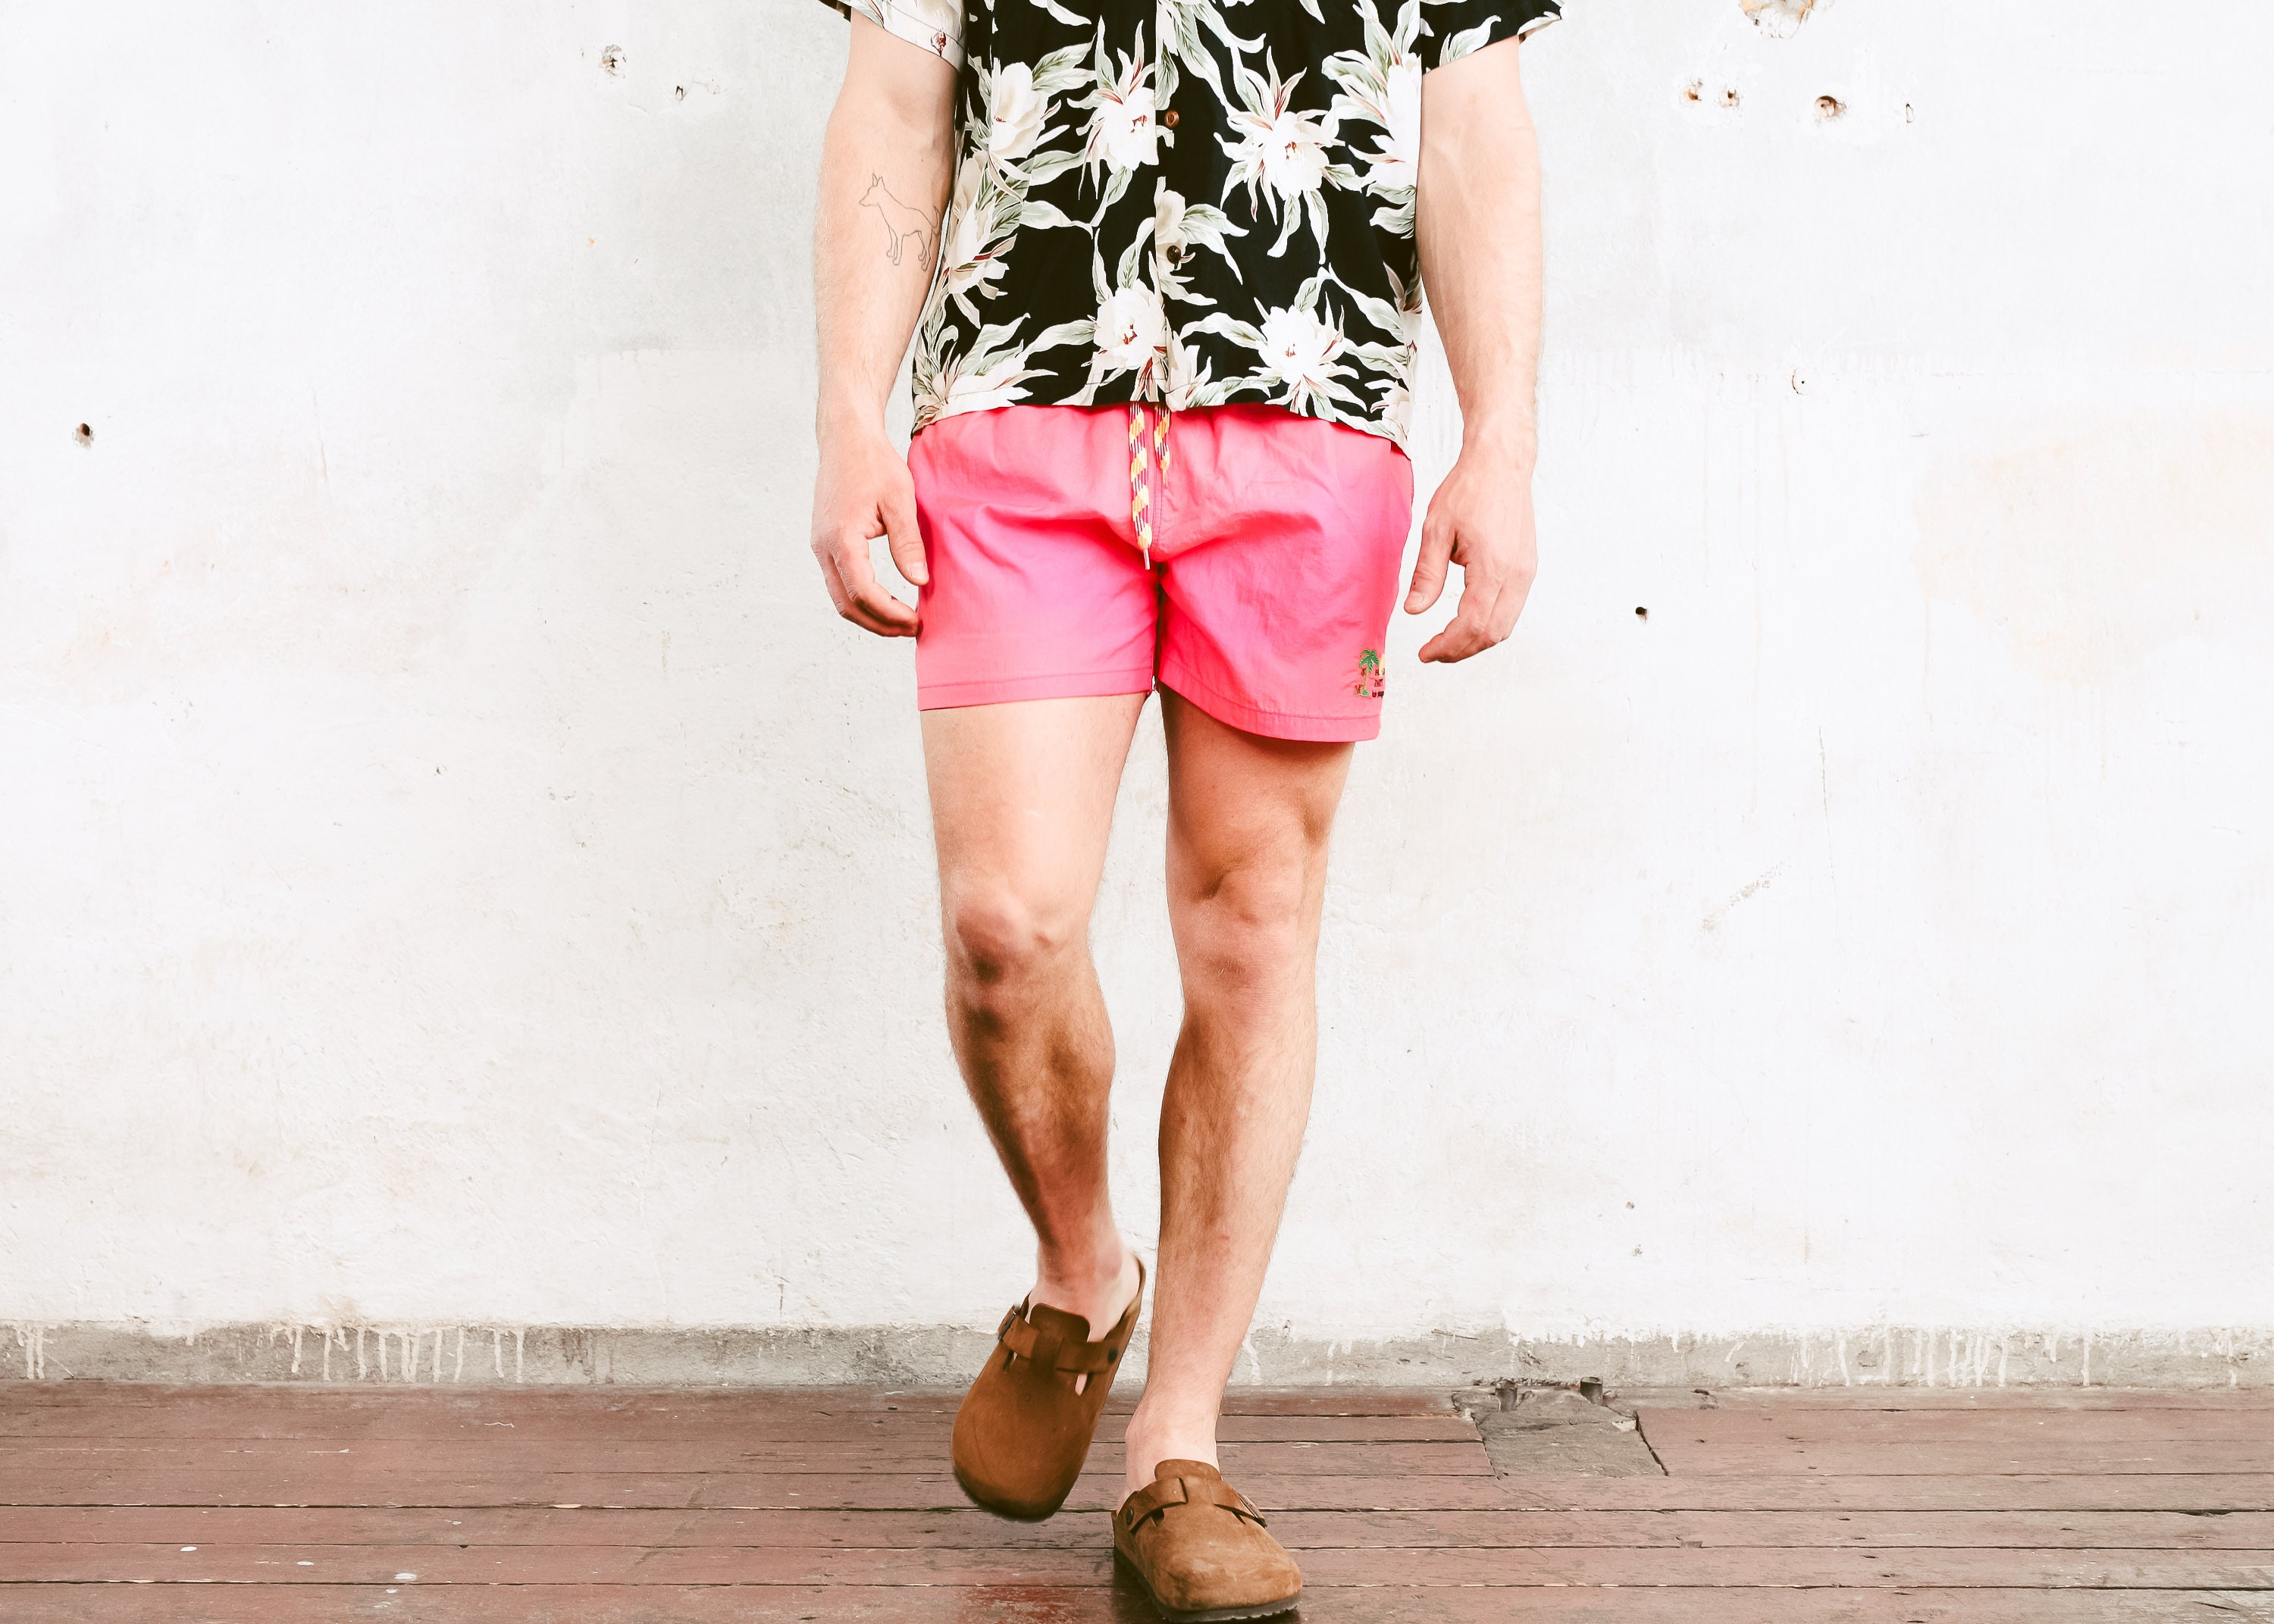 767e53458a Vintage Pink Beach Shorts . 90s Bold Summer Shorts Men's Surfer Shorts  Men's Swim Trunks Vacation Shorts Boyfriend Gift . size Medium M